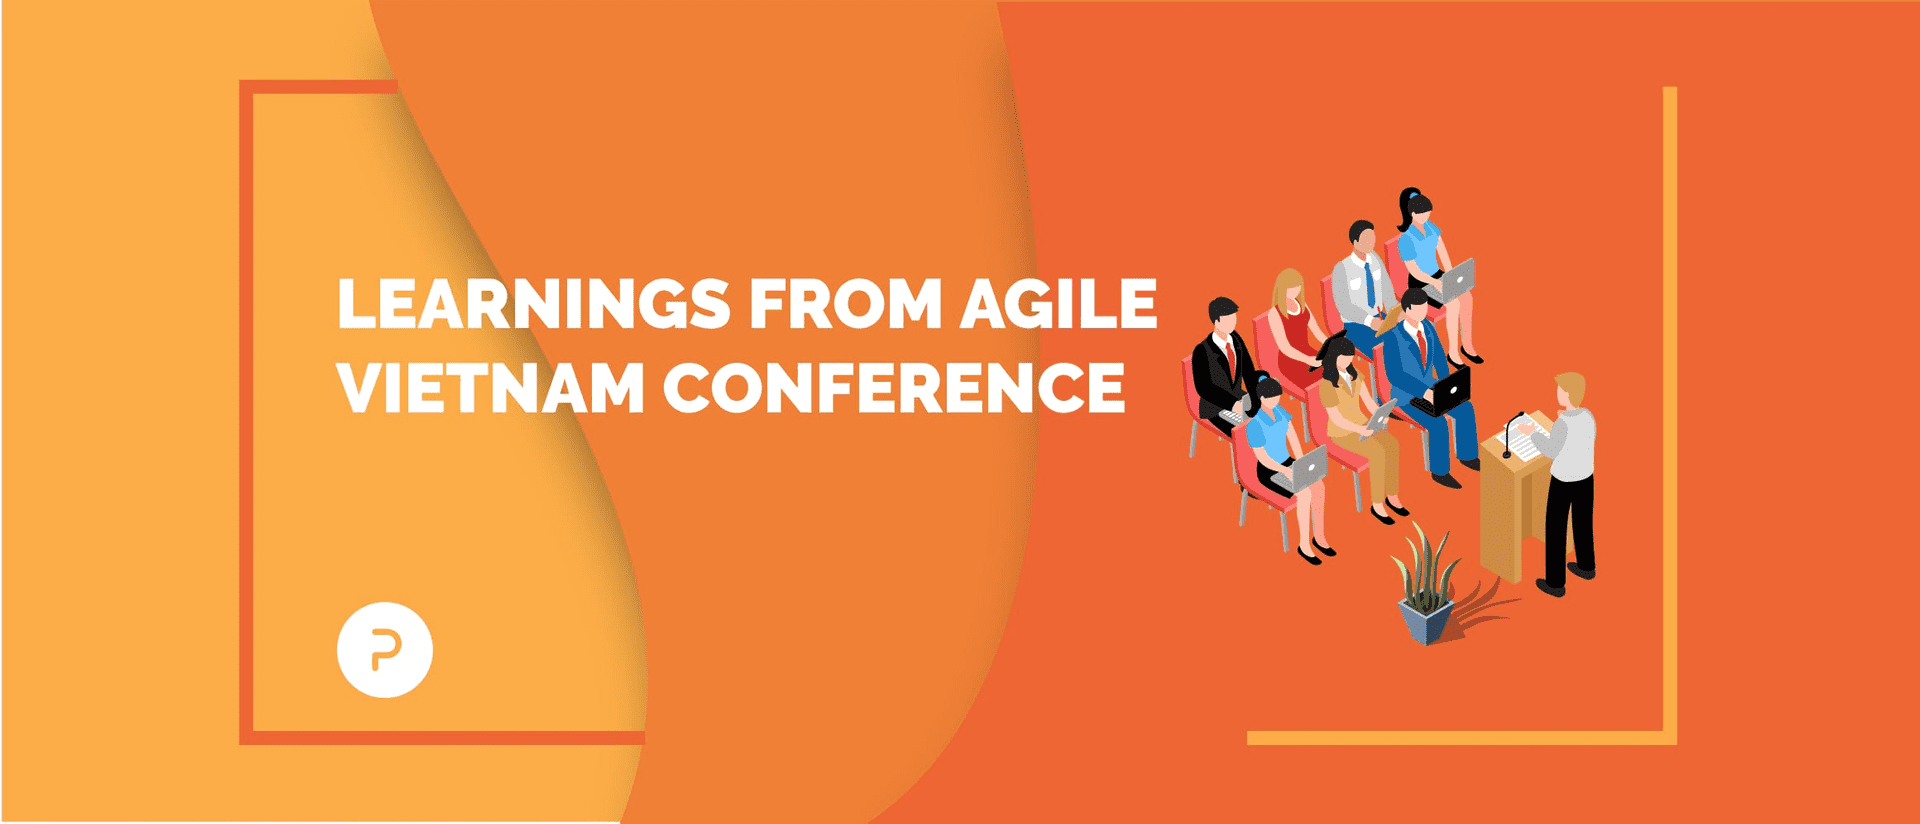 Learn, Un-learn, Re-learn: Takeaways from Agile Vietnam Conference '19